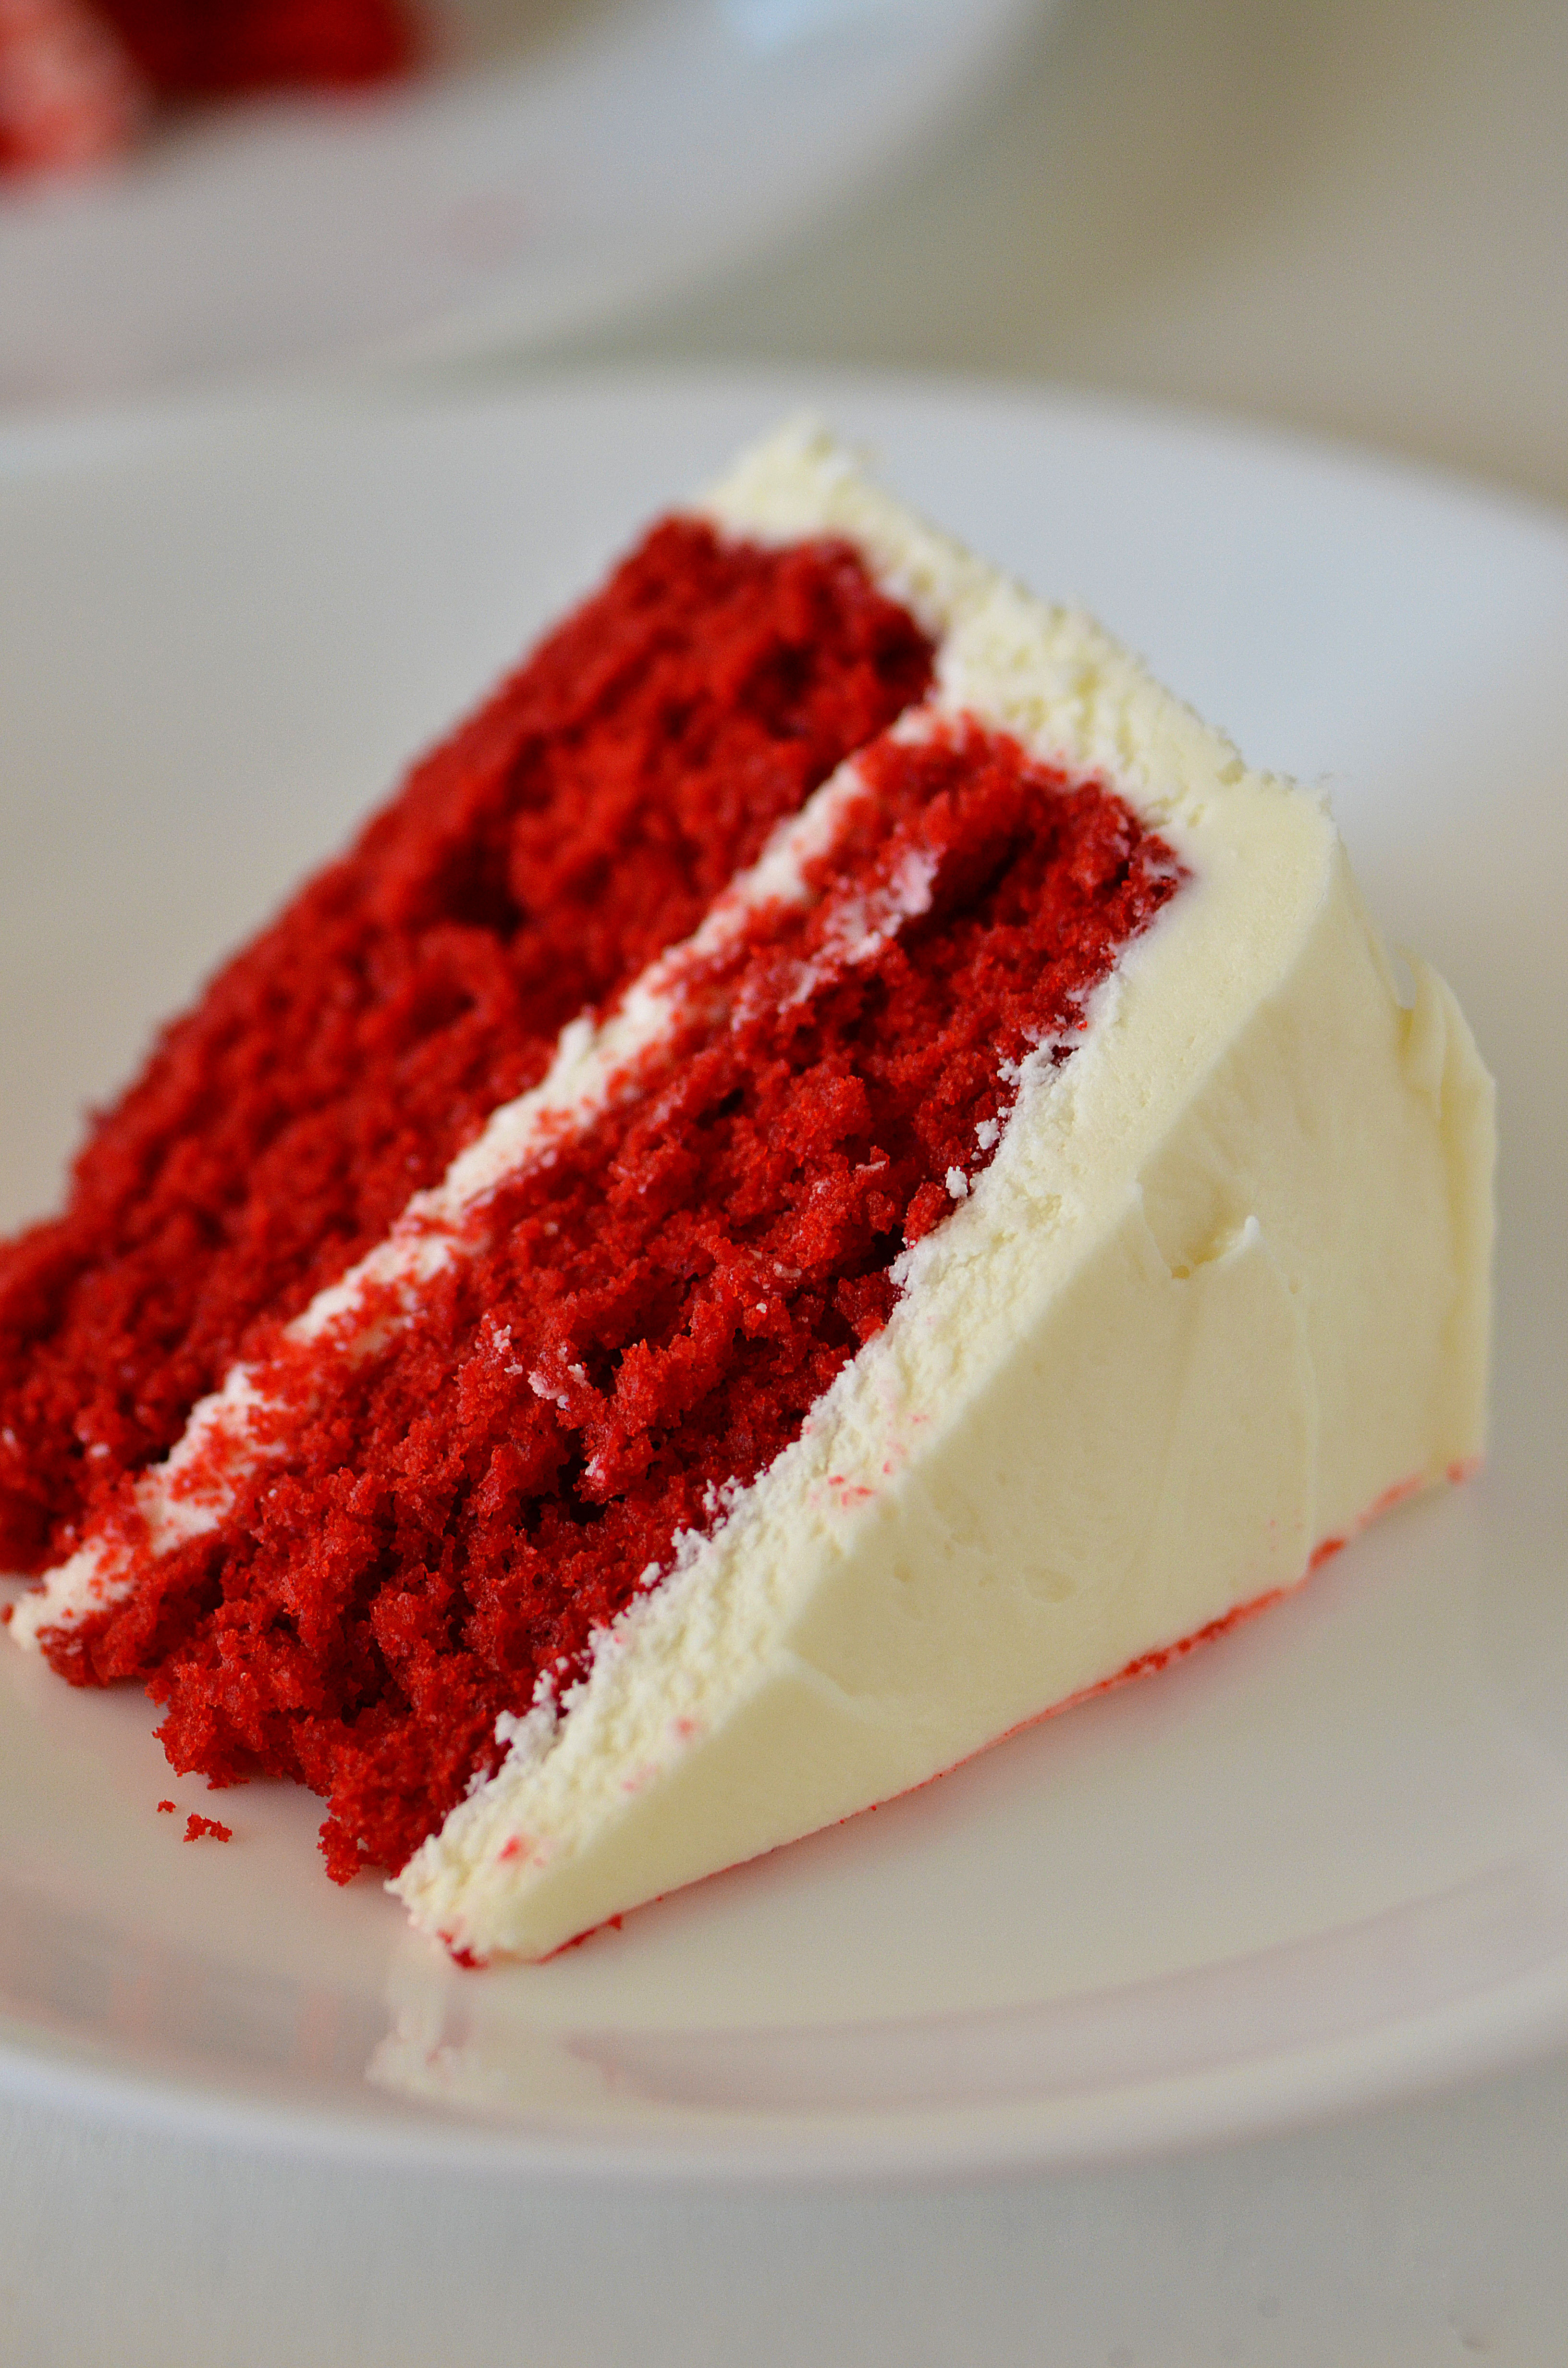 What Is Red Velvet Cake  Red Velvet Cake with Cream Cheese Frosting Life In The